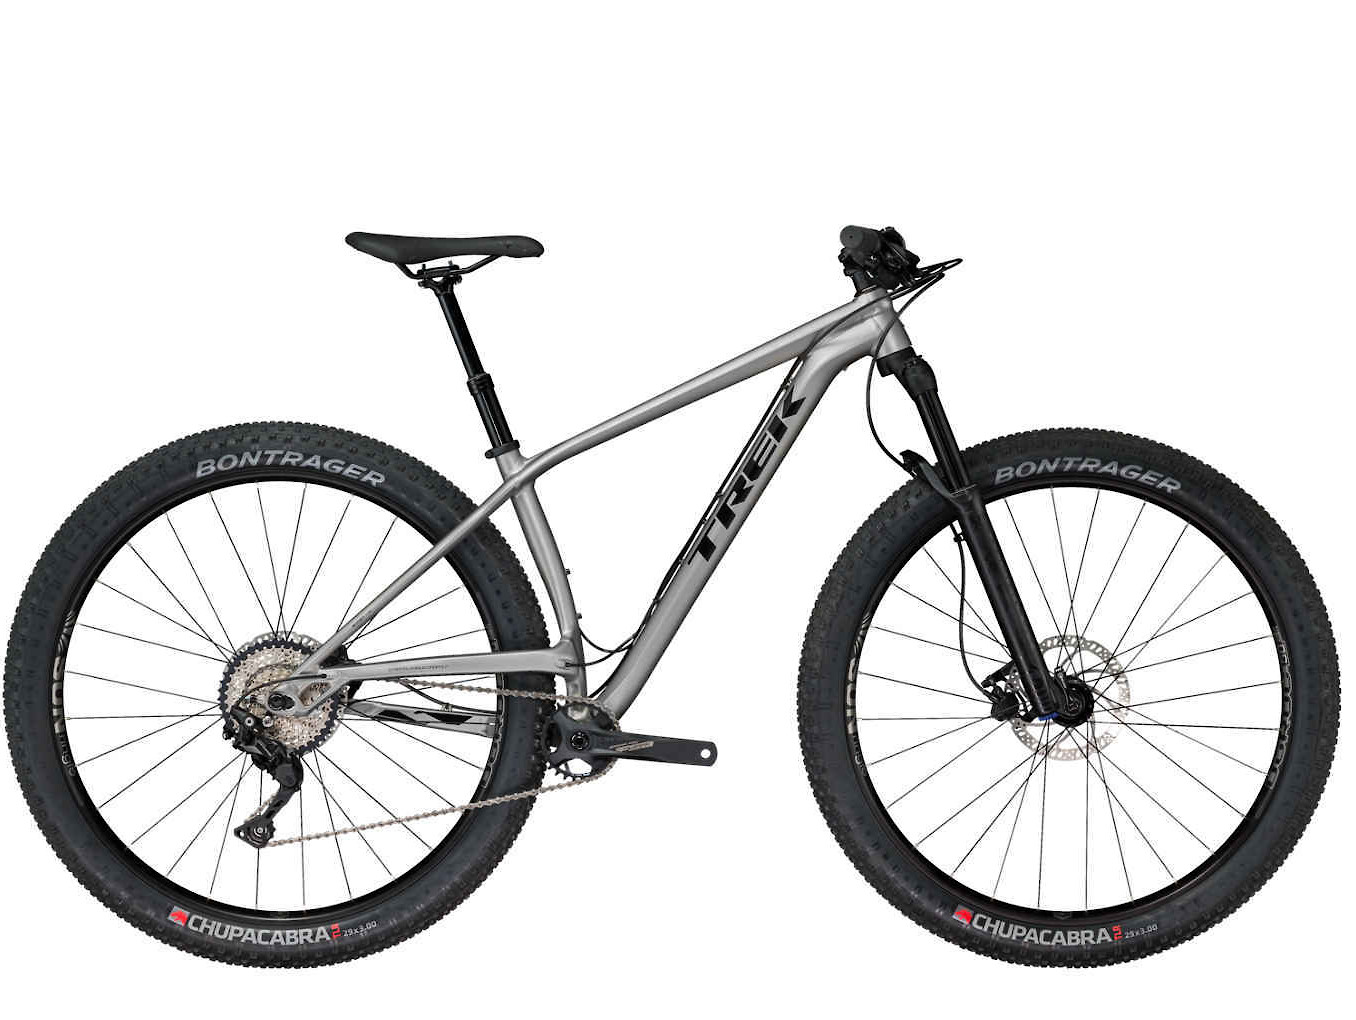 2018 Stache 5 Matte Metallic Gunmetal (17.5) $1599.99